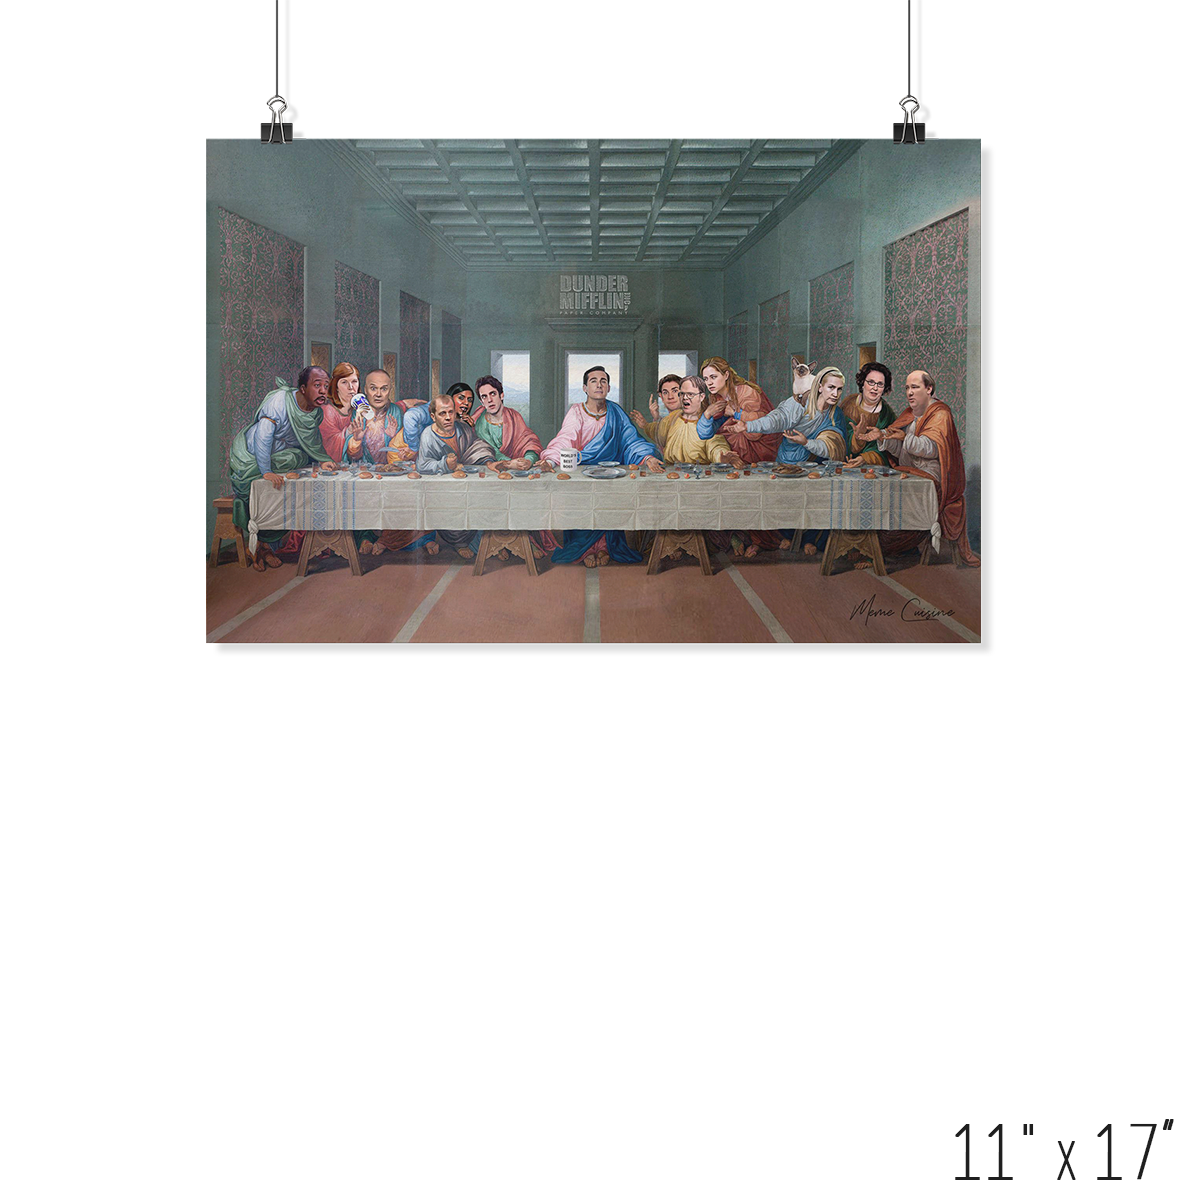 HaoDe The Last Supper at Dunder Mifflin Wall Flag 3x5ft Banner